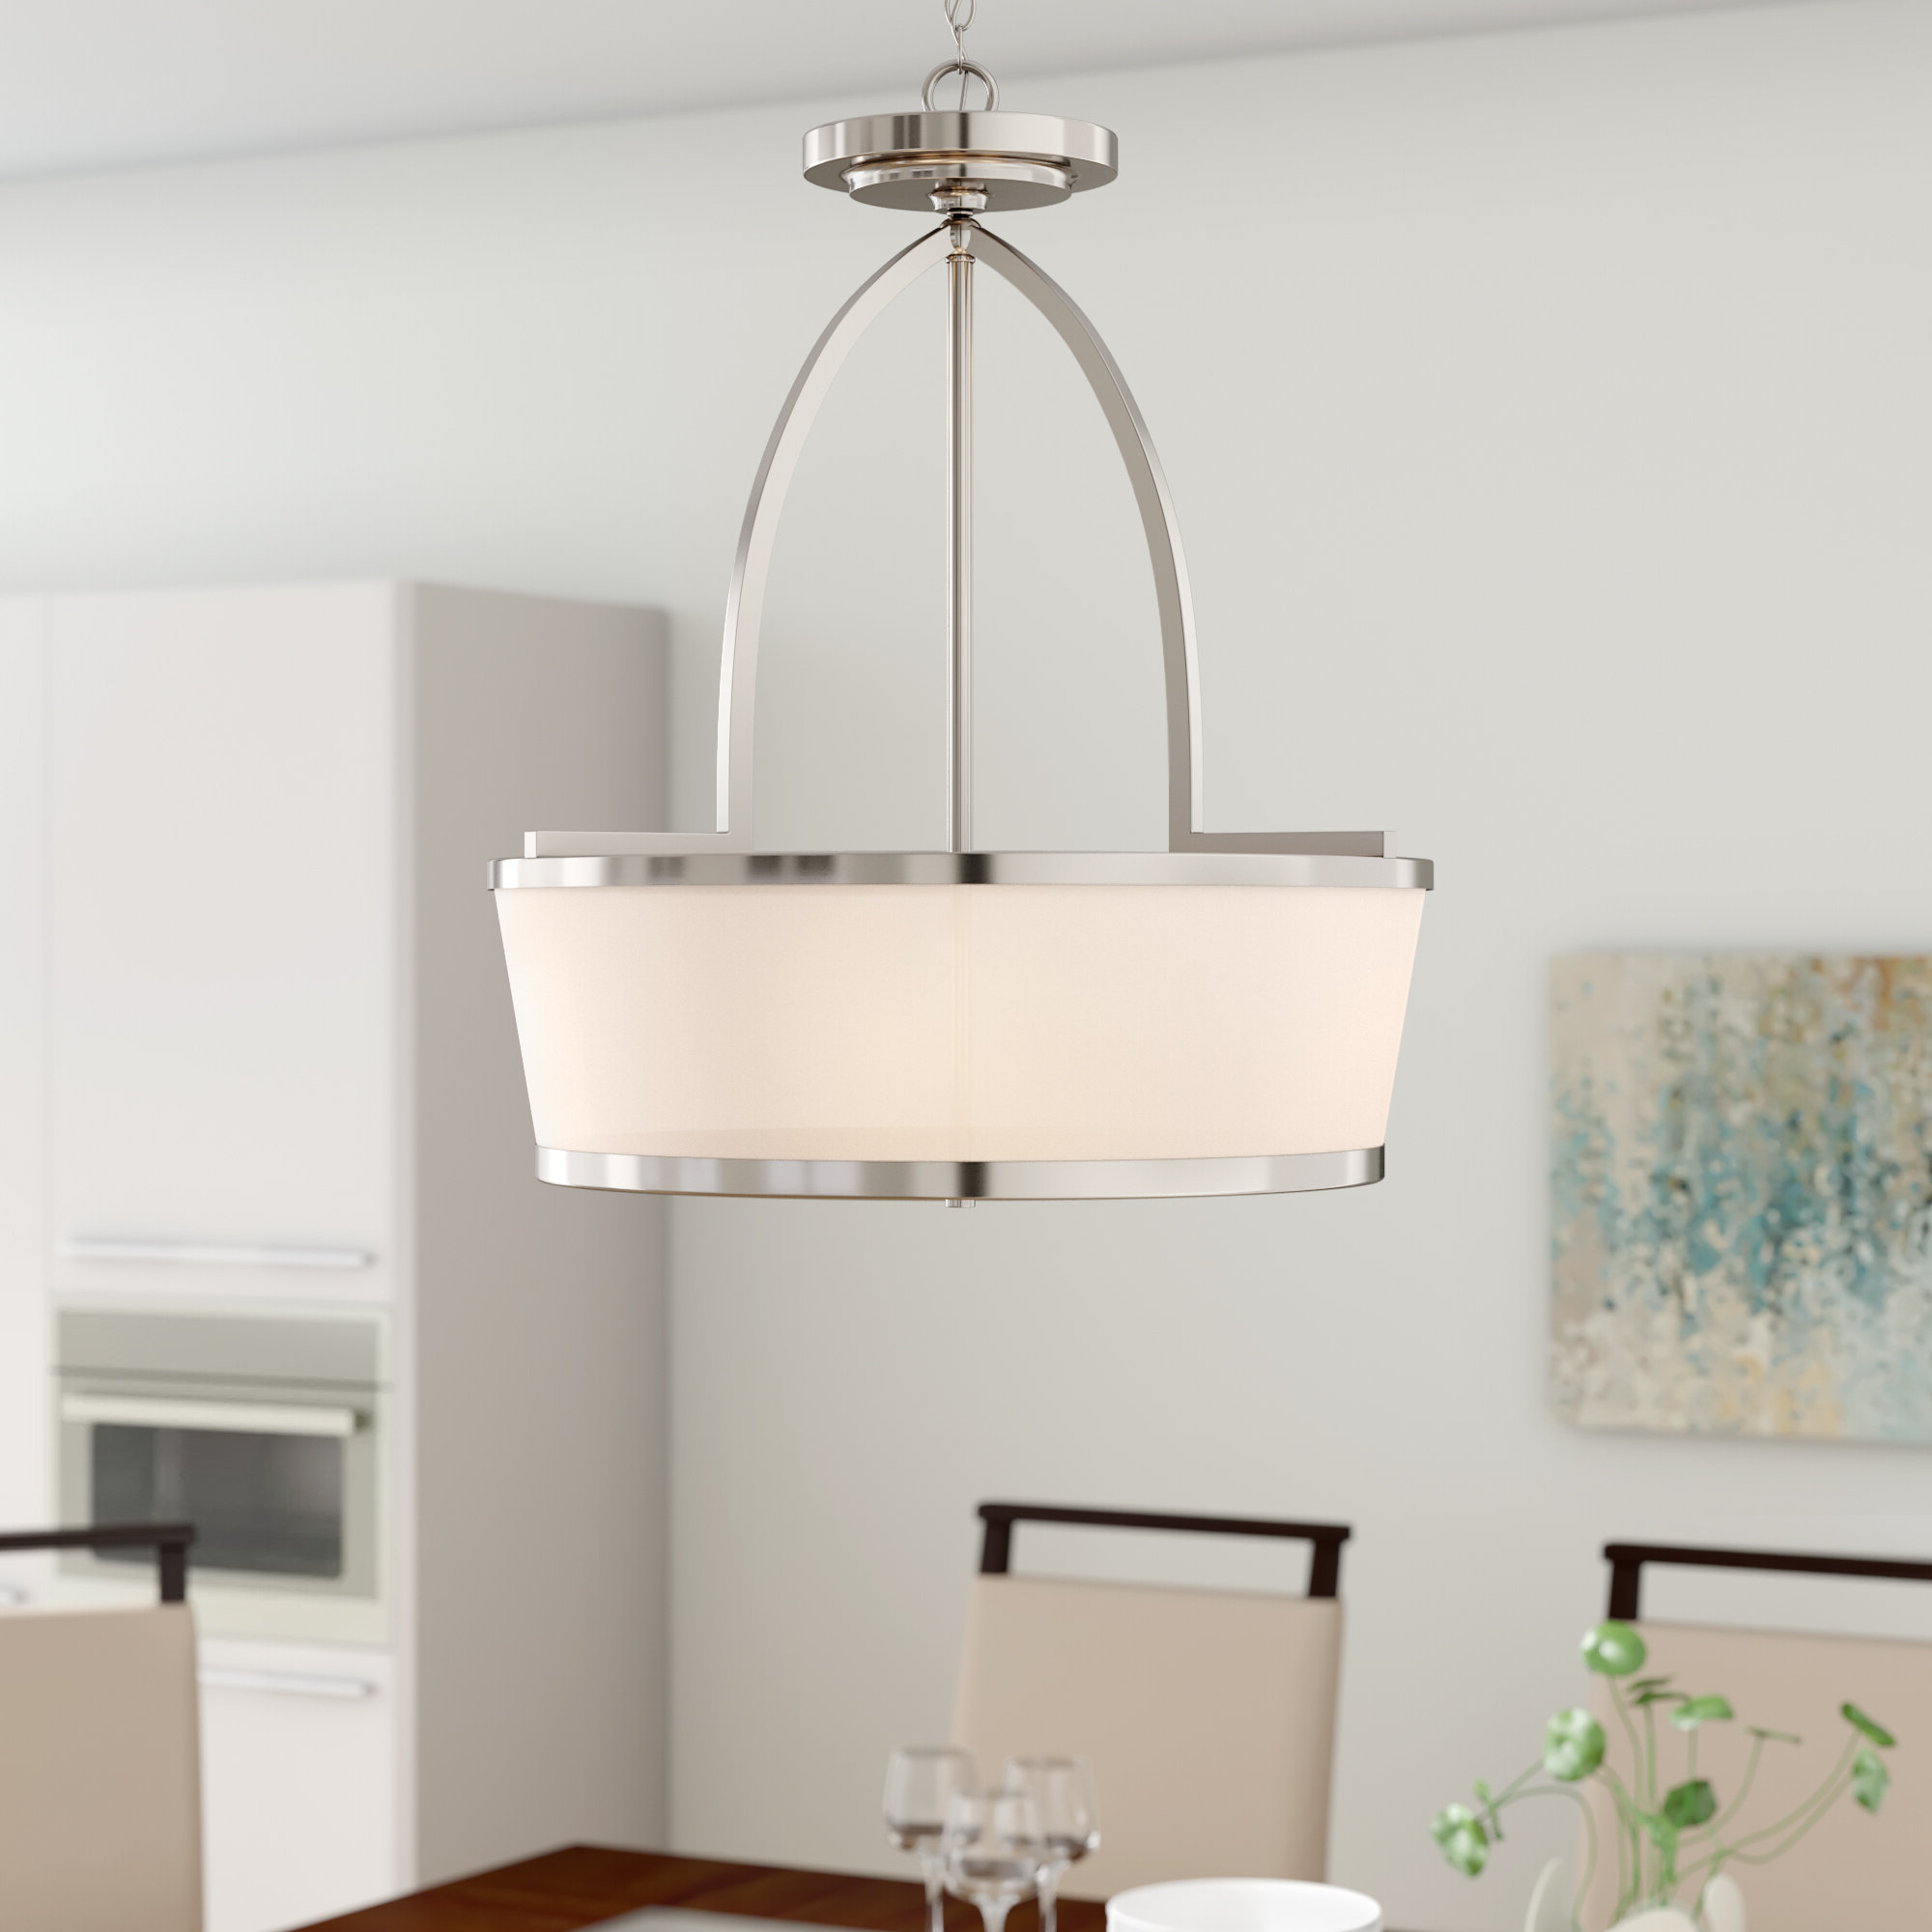 Kasey 3 Light Single Drum Pendants With Most Current Camacho 3 Light Single Drum Pendant (View 7 of 25)